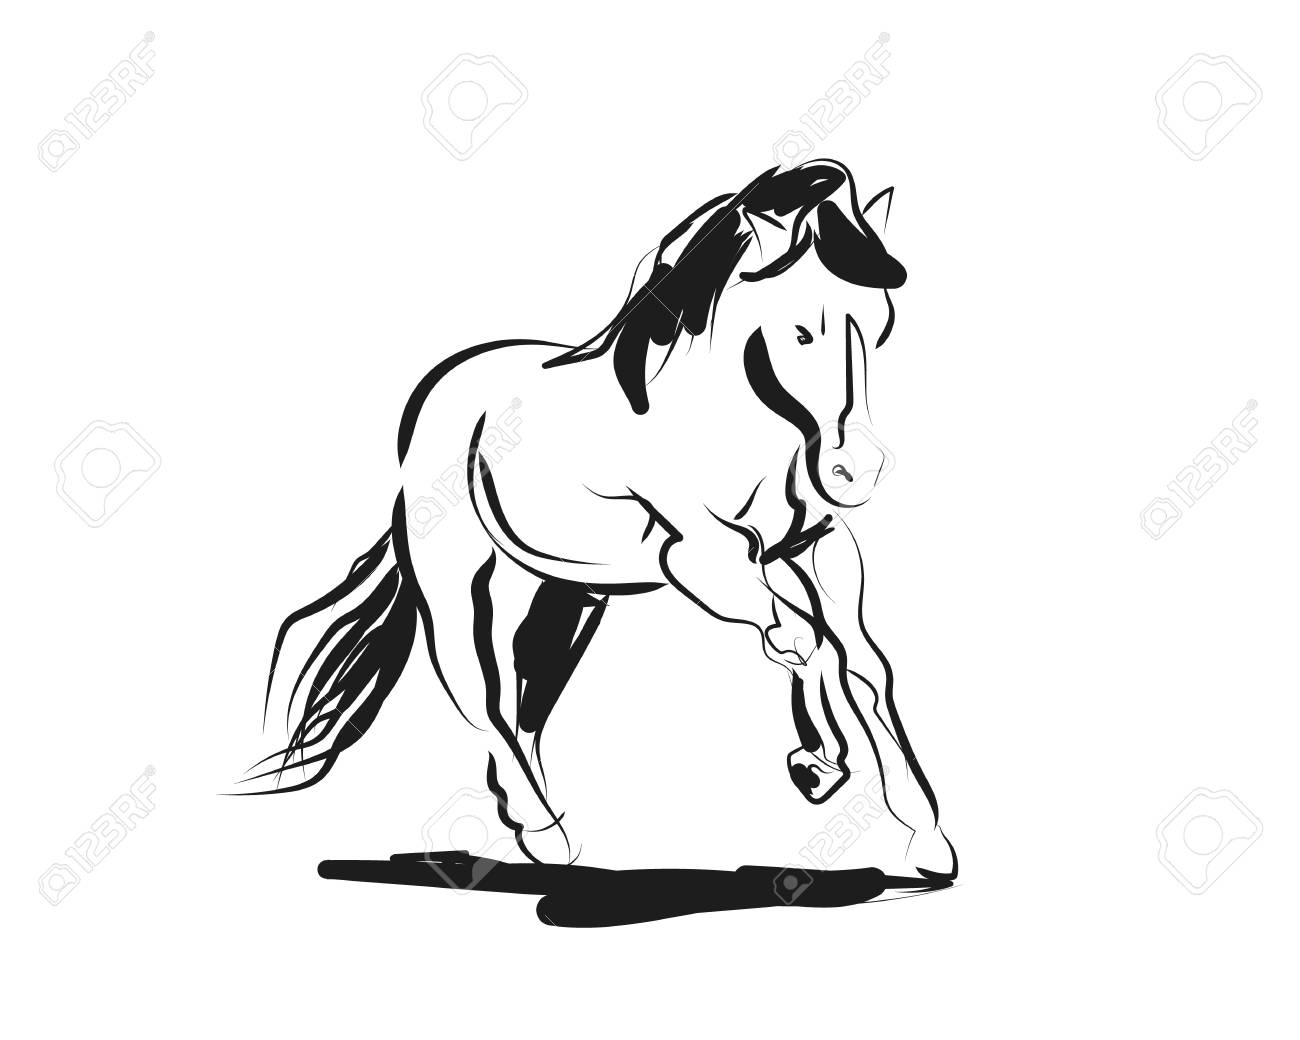 Vector Ink Sketch Of A Running Horse Royalty Free Cliparts Vectors And Stock Illustration Image 106905839